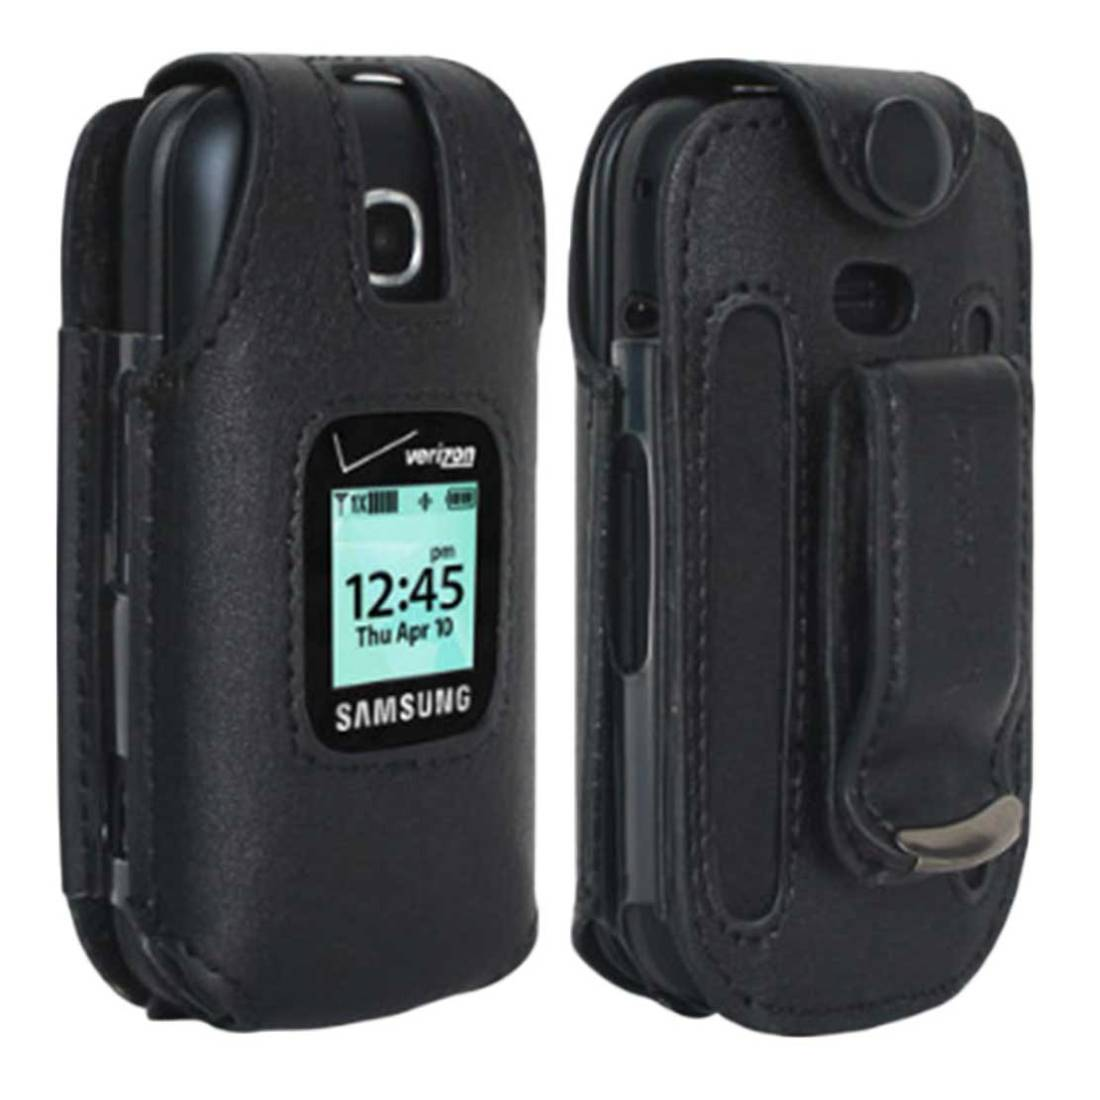 Verizon Leather Fitted Case for Samsung Gusto 3 Cell Phone with Clip Holster - Black